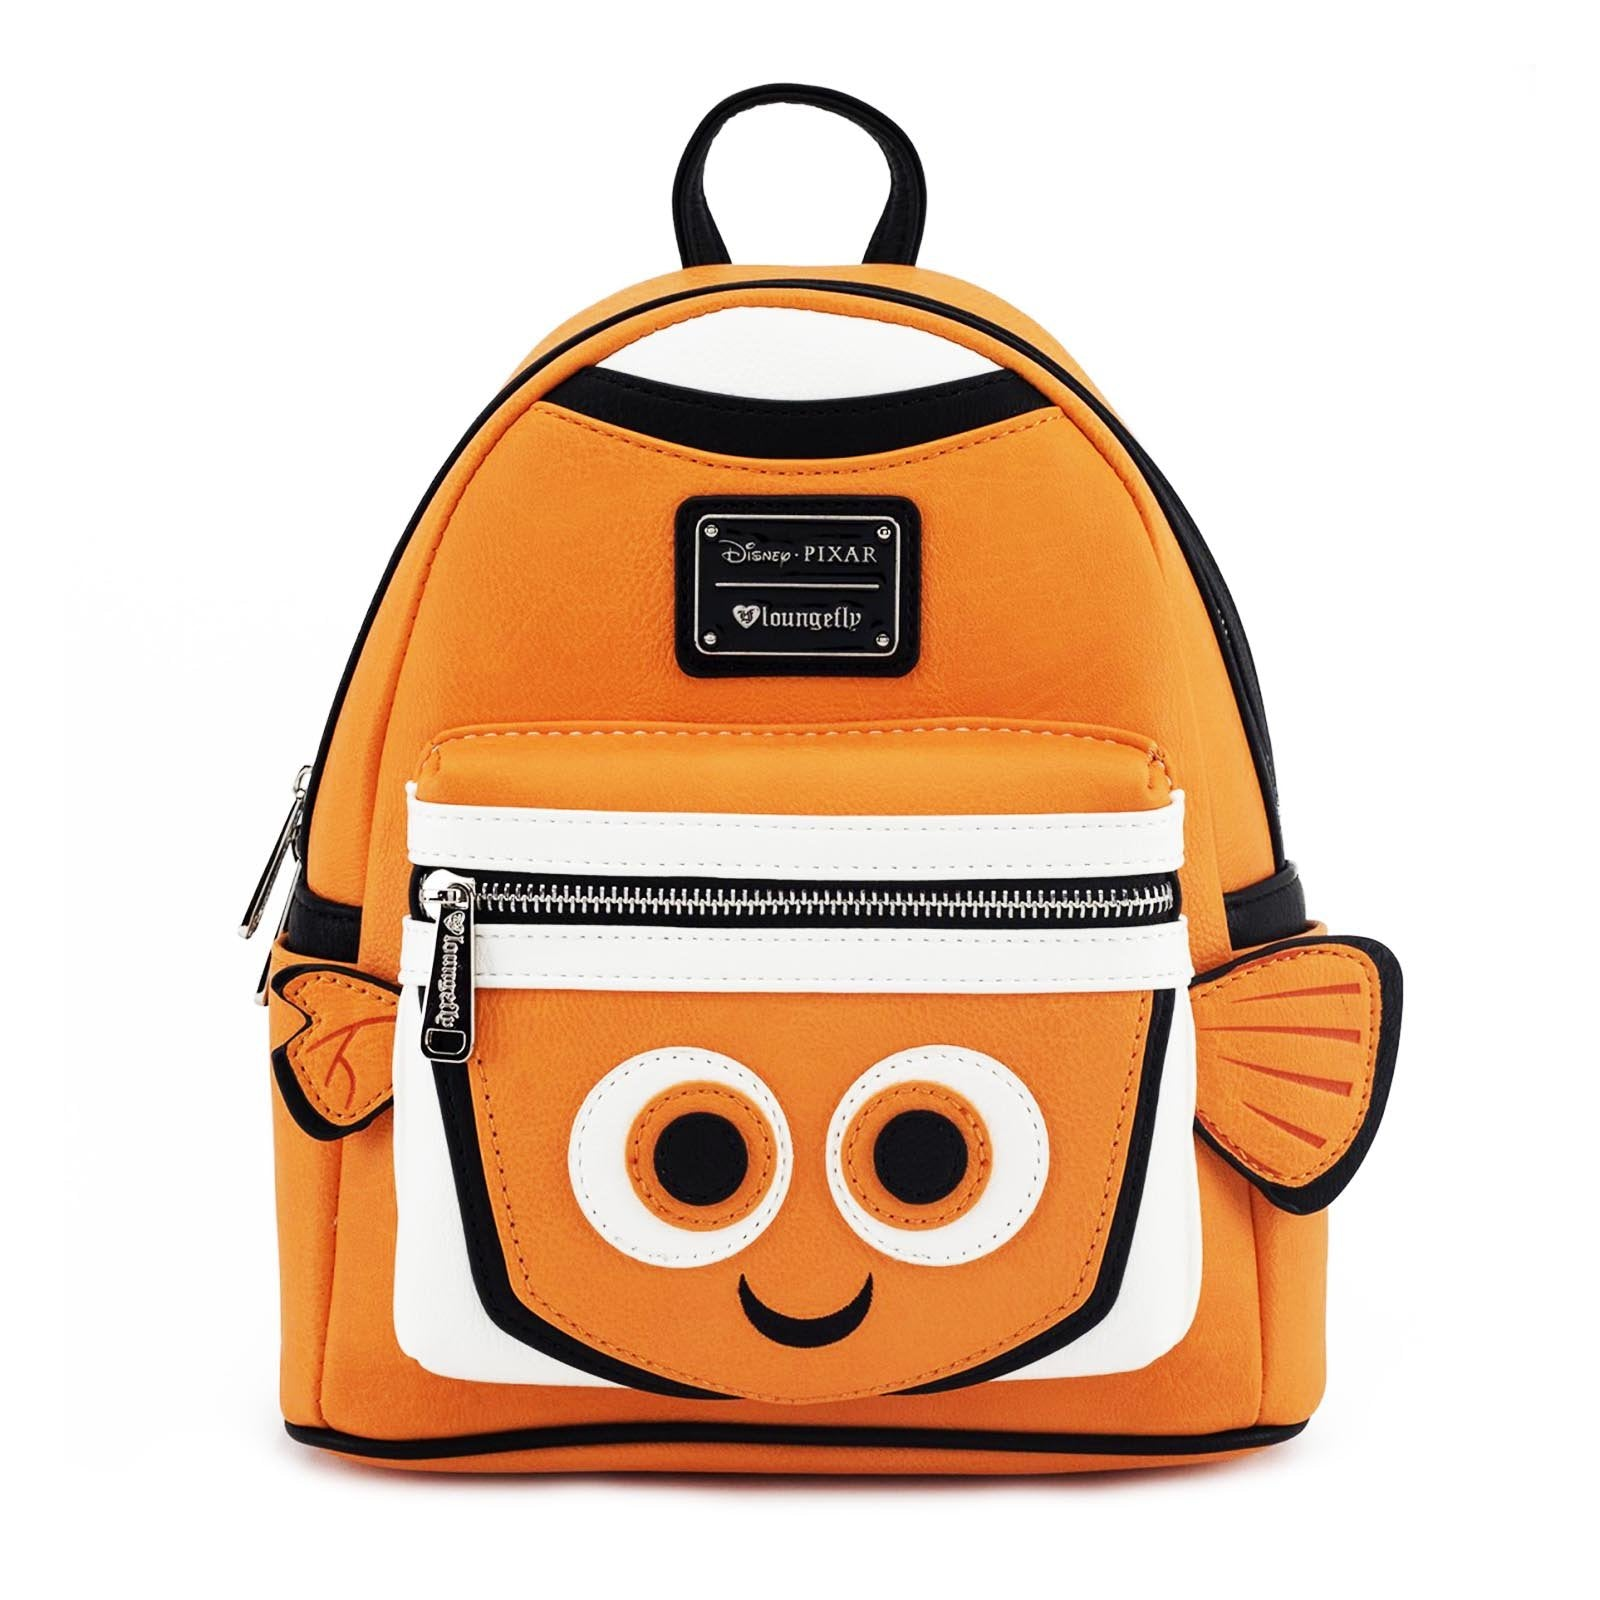 ffd1a6db358 Loungefly Disney Finding Nemo Face Mini Backpack